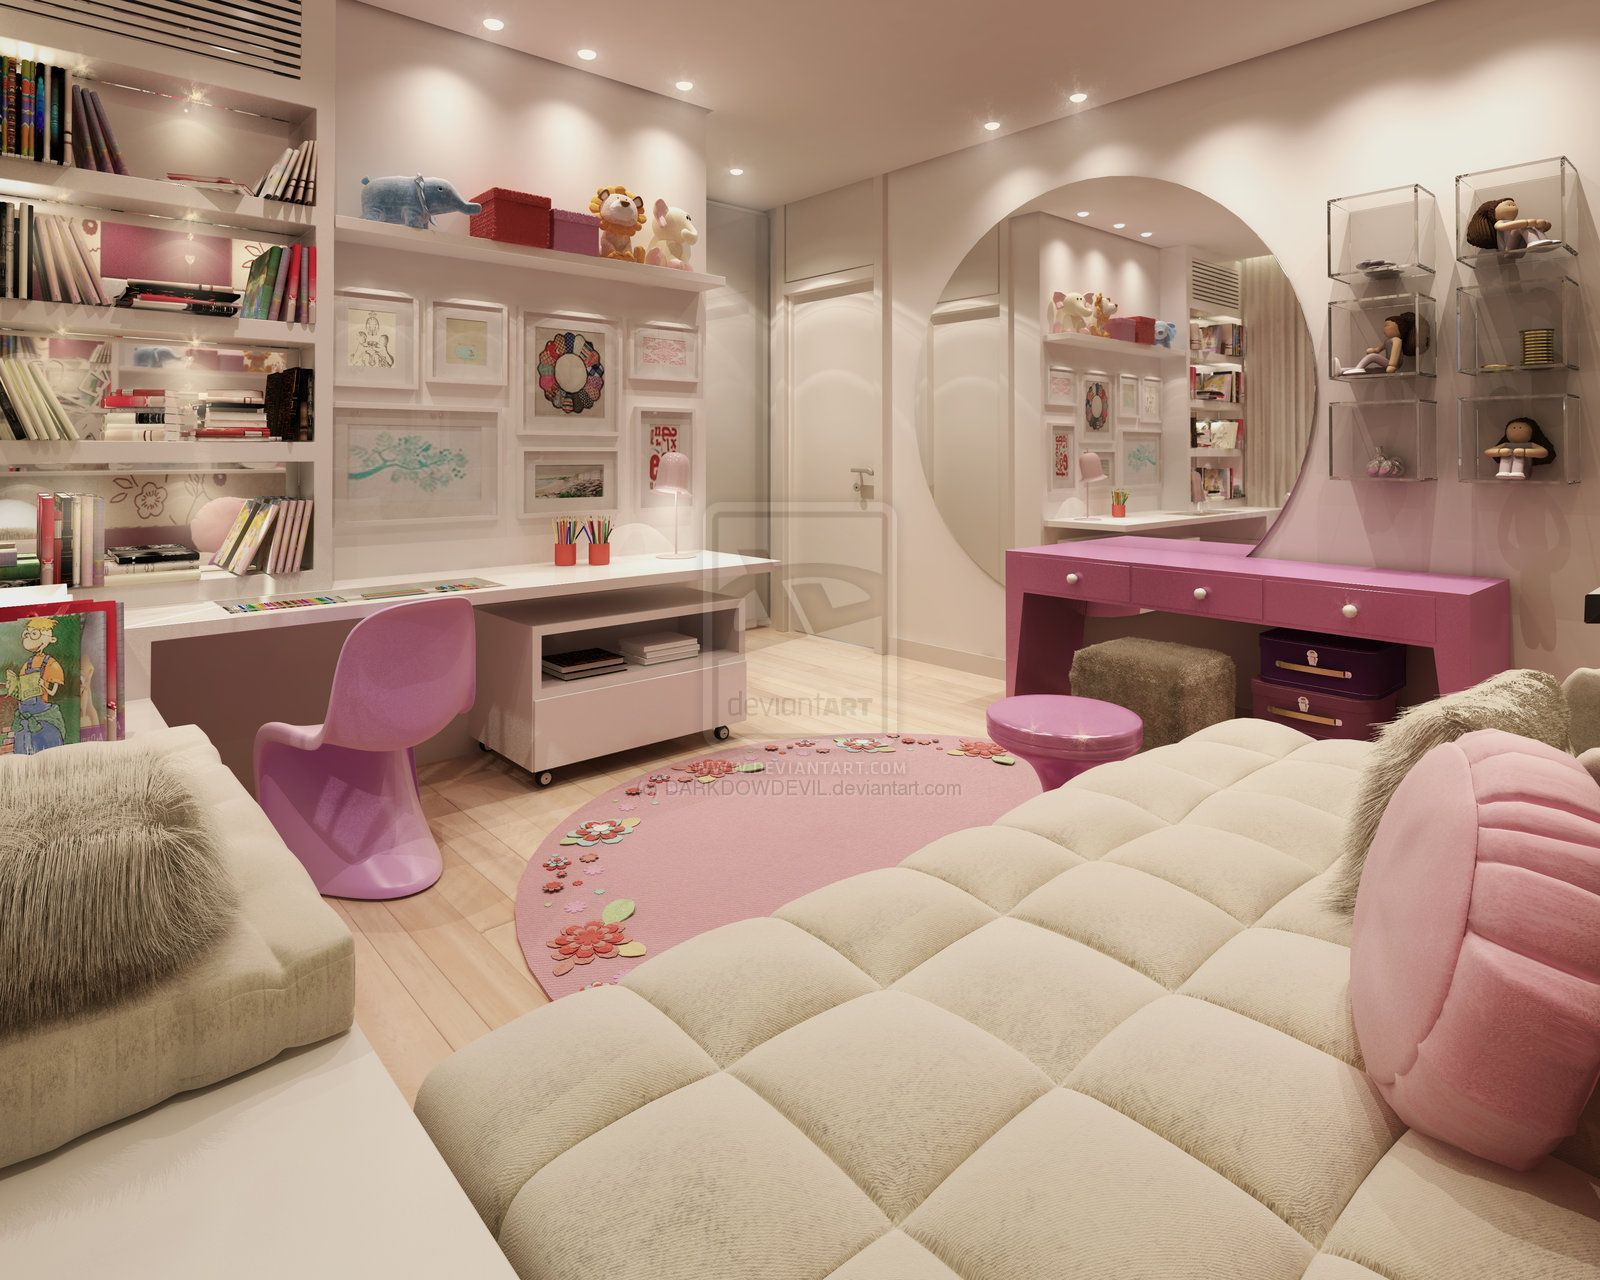 Room designer for girls - 30 Dream Interior Design Ideas For Teenage Girl S Rooms